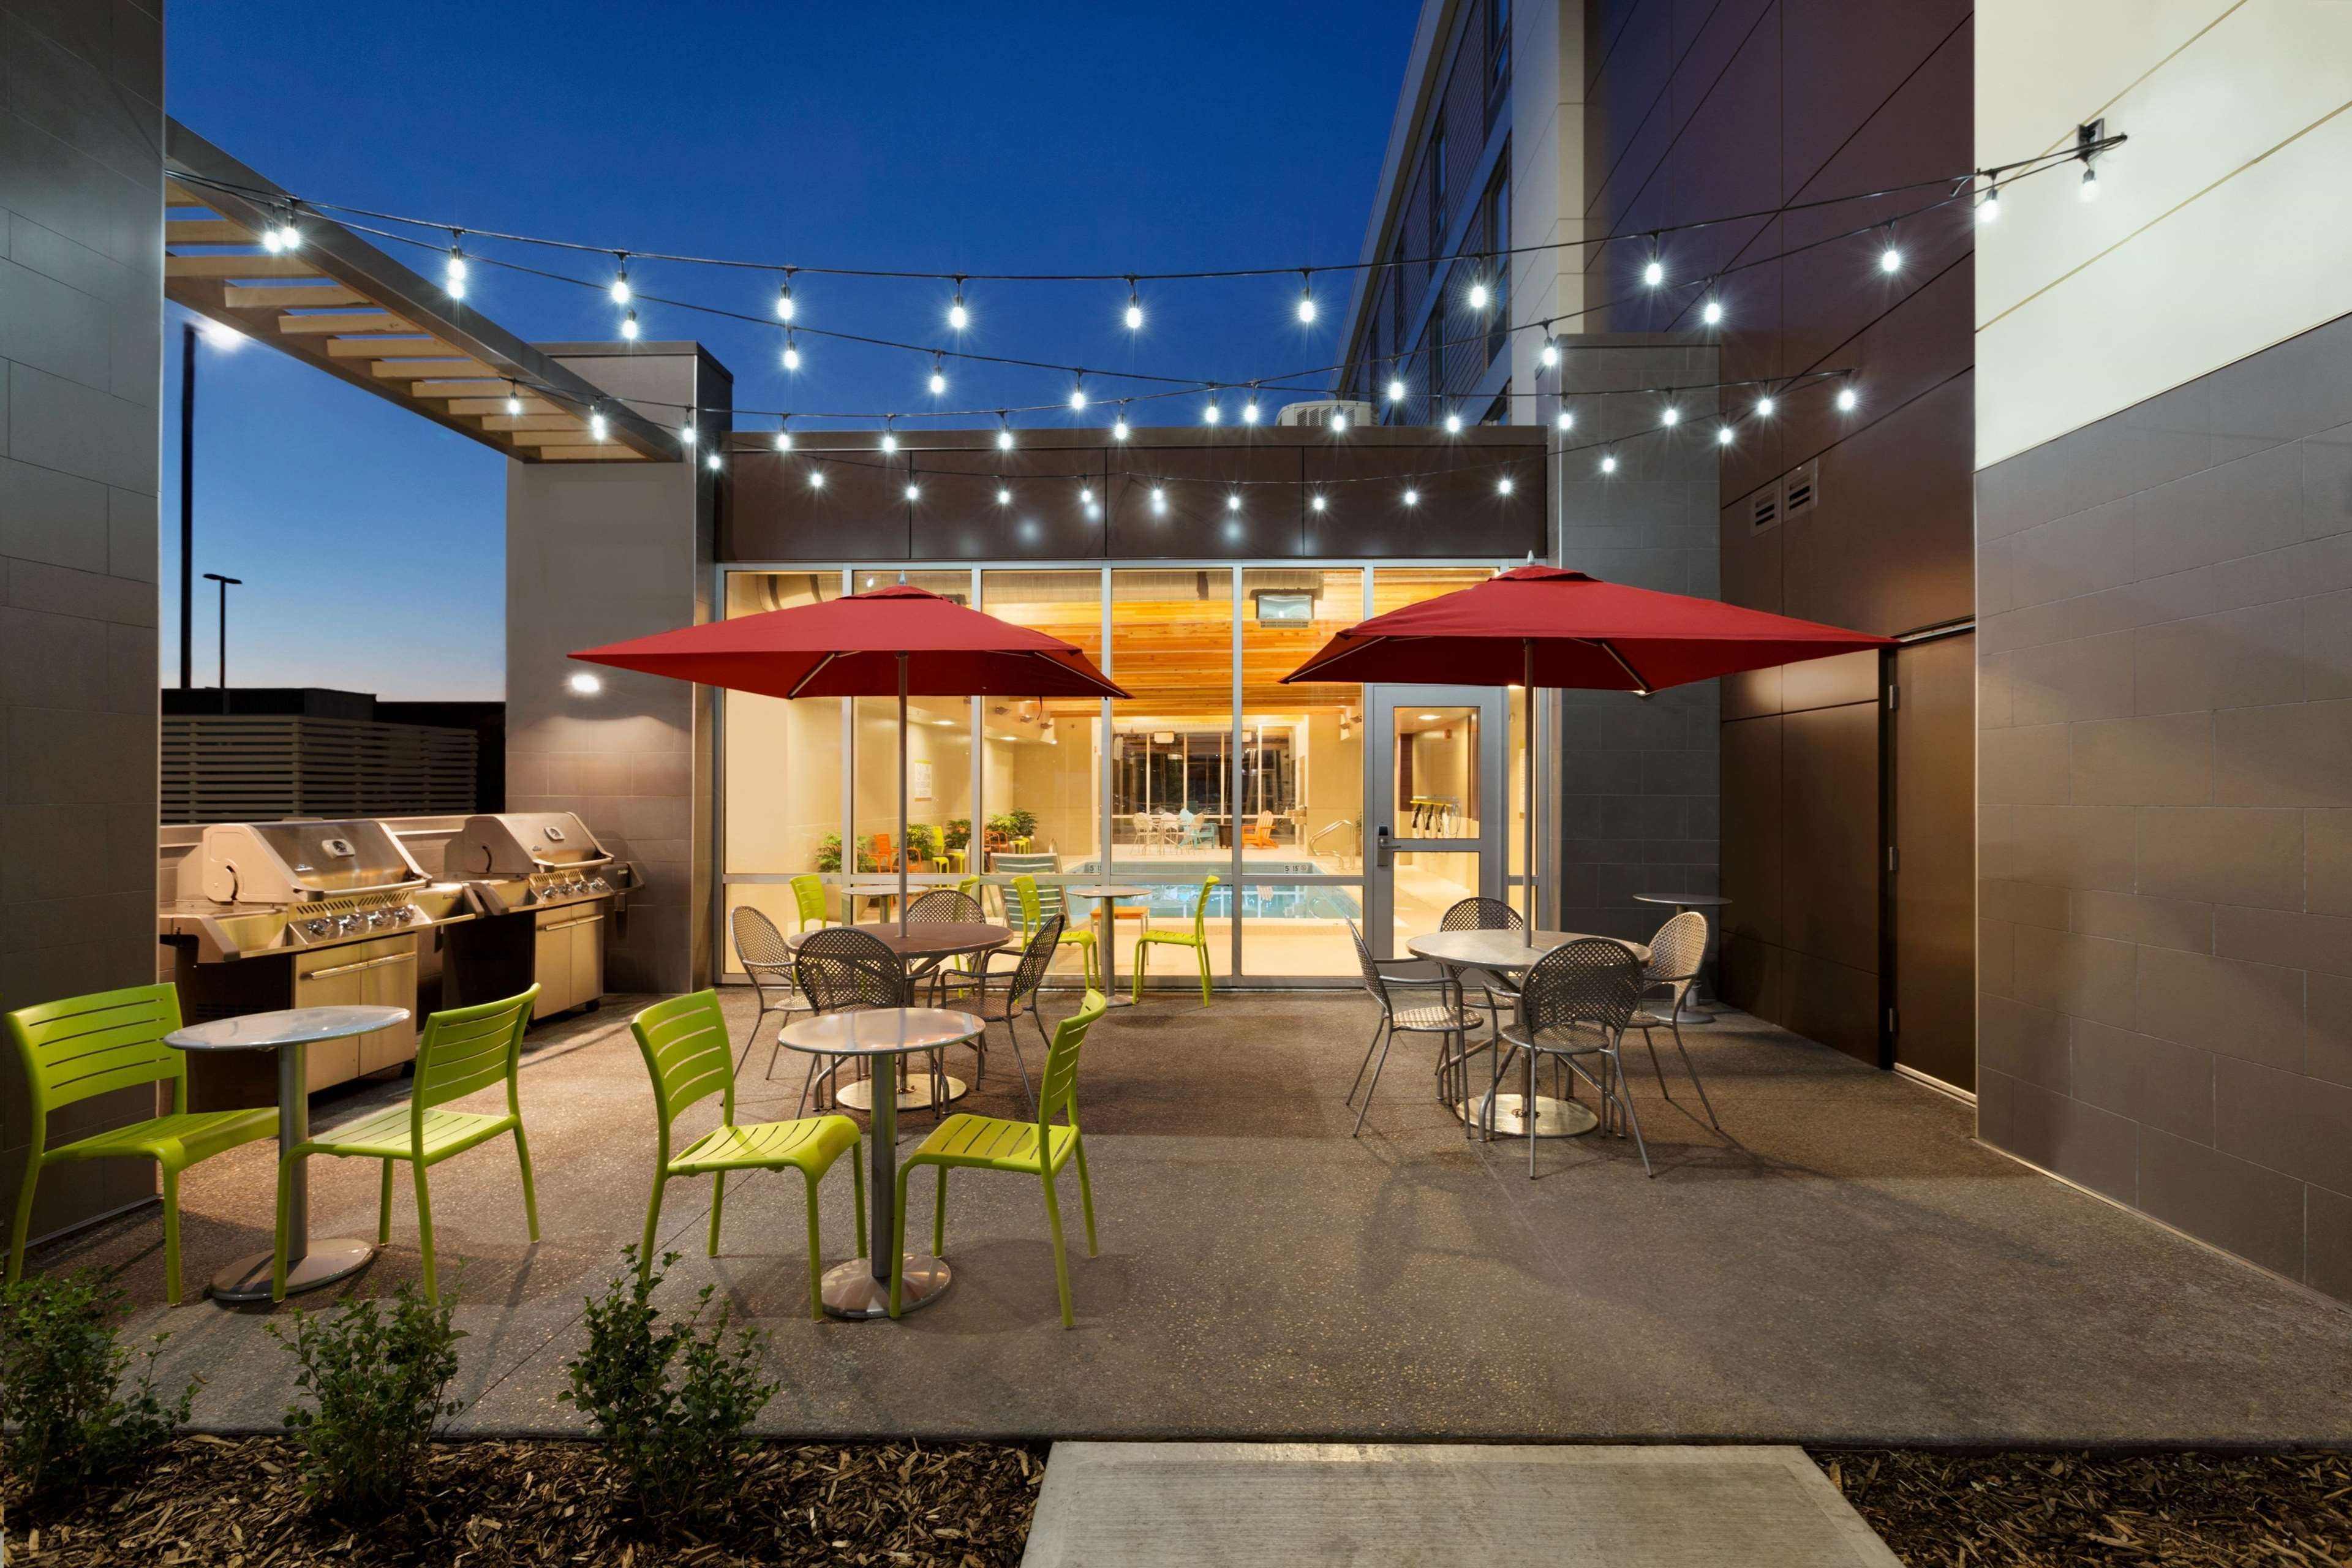 Home2 Suites by Hilton West Edmonton, Alberta, Canada in Edmonton: Patio with BBQ Grill